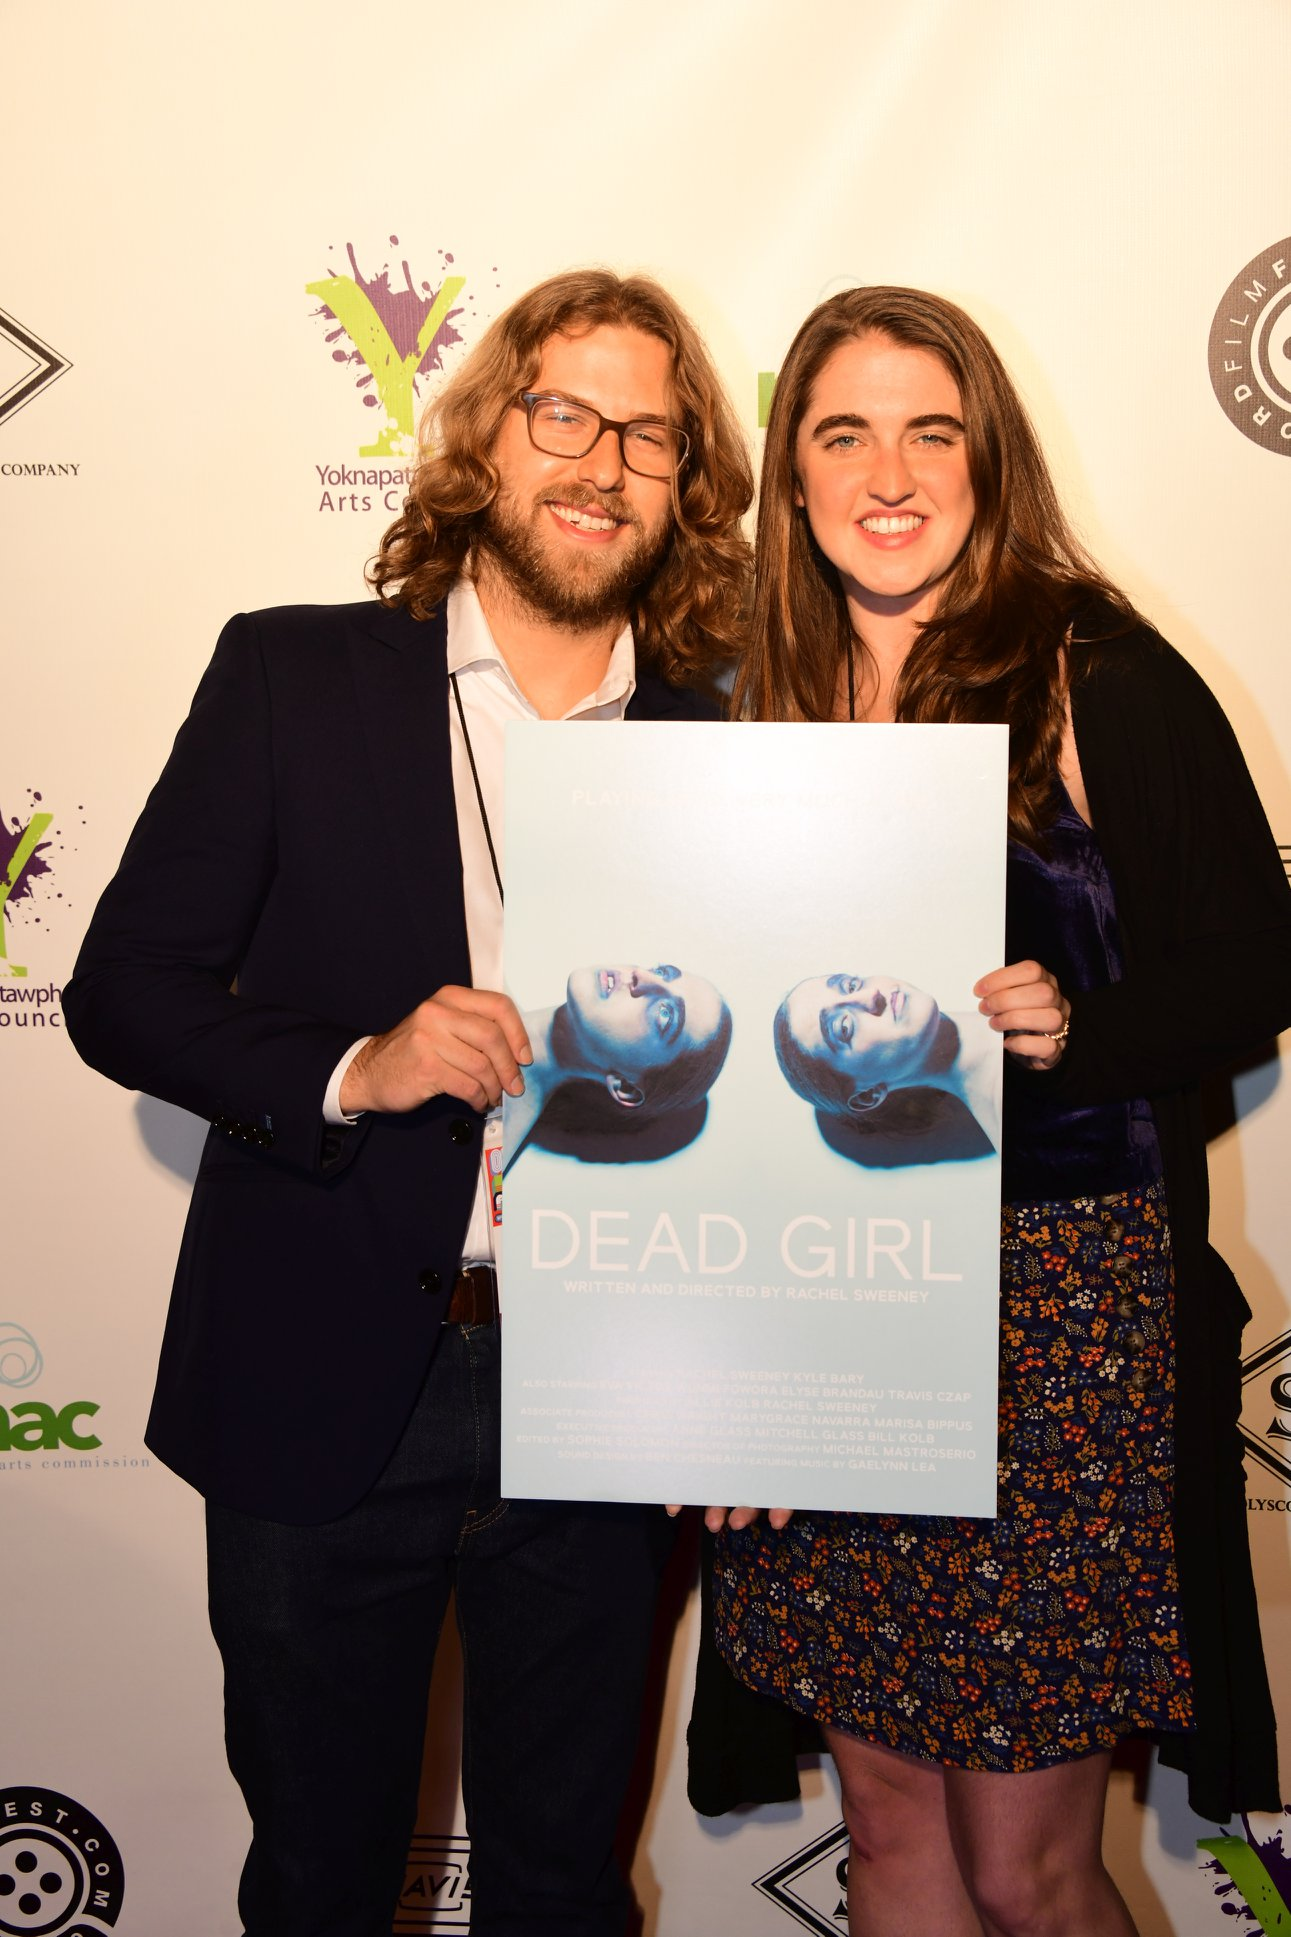 Dead Girl at Oxford Film Fest - Dead Girl had its world premiere at the Oxford Film Festival on February 8th, 2019! A huge thanks to the staff and volunteers who made the weekend an incredible experience.